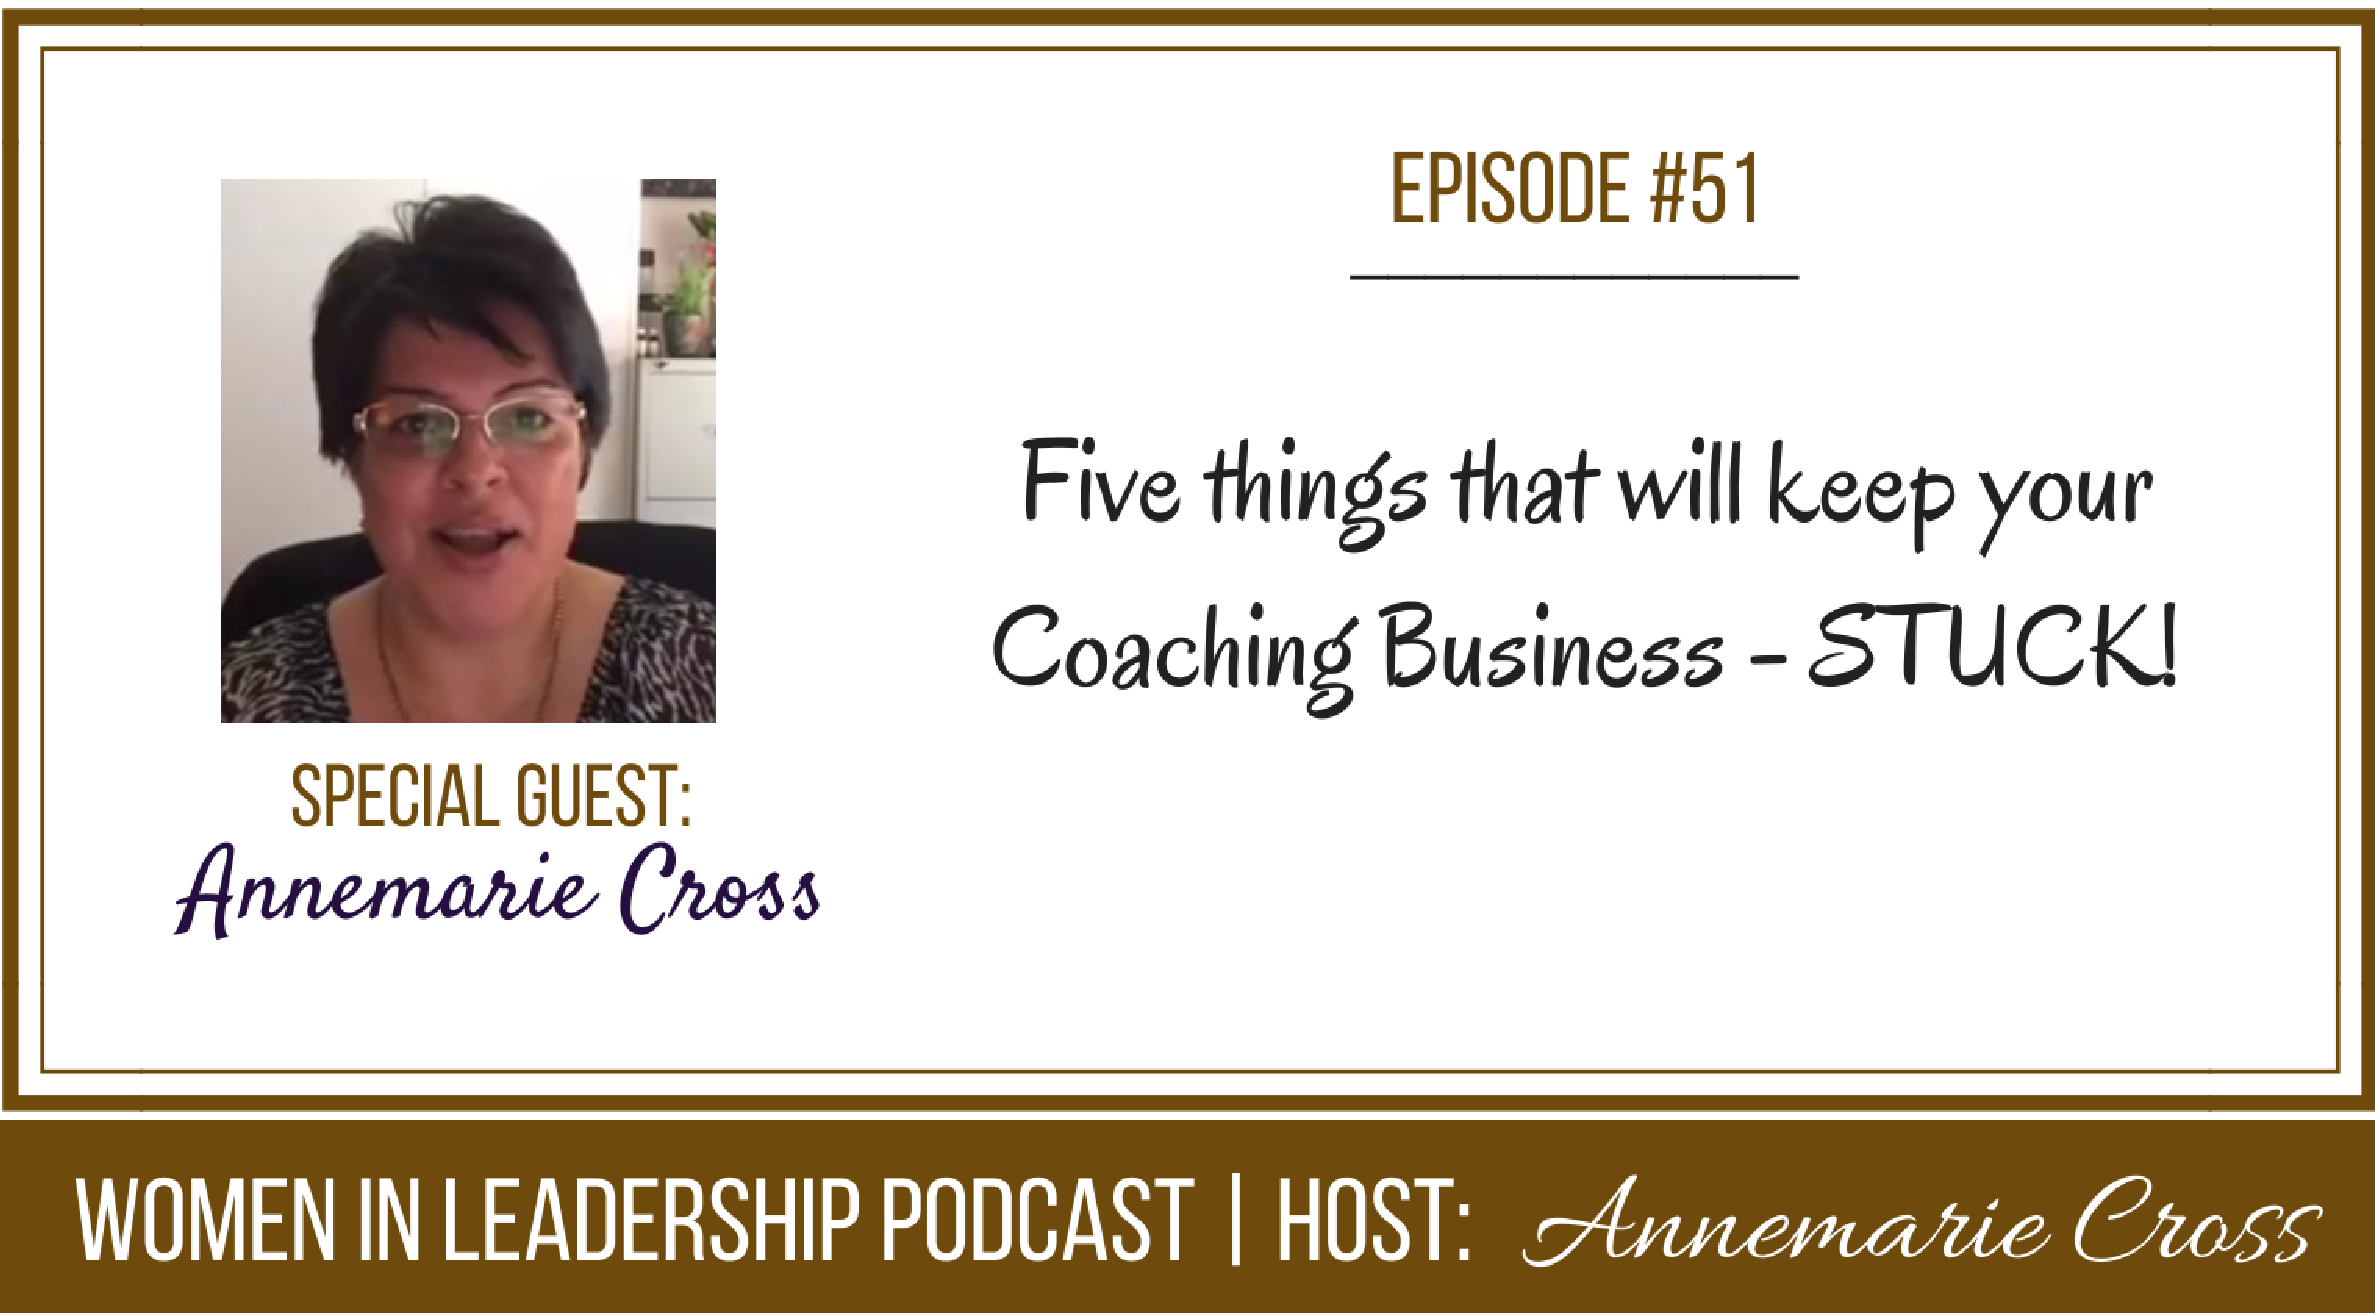 [Ep #51] Five things that will keep your coaching business STUCK